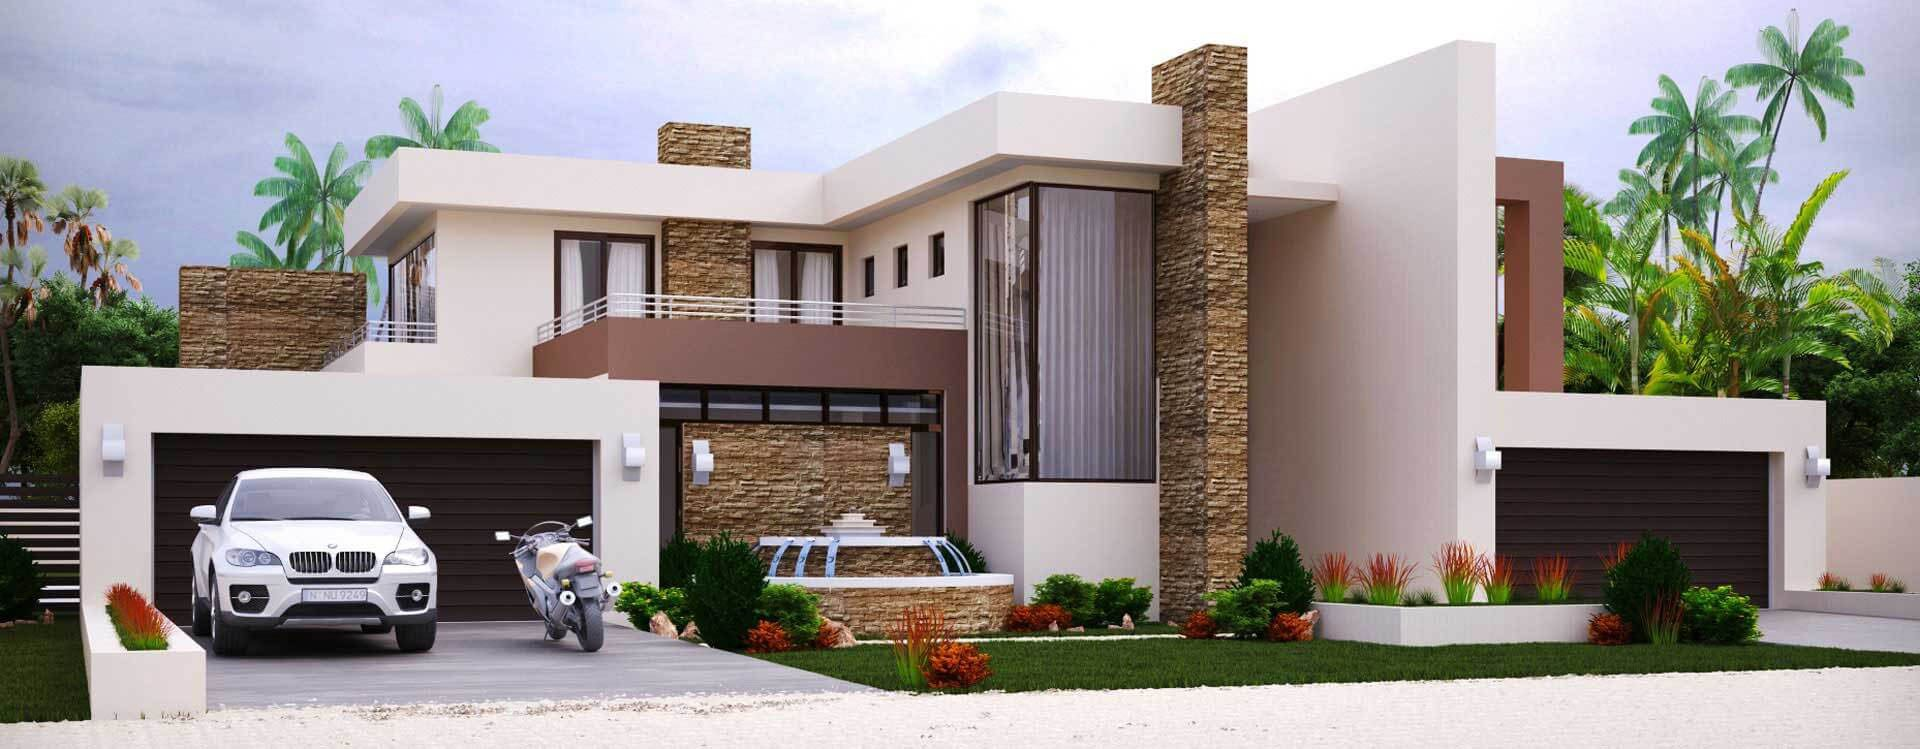 house plans south africa 4 bedroom house plans double story farmhouse plans floorplanner room designer southern - Modern House Front View Design